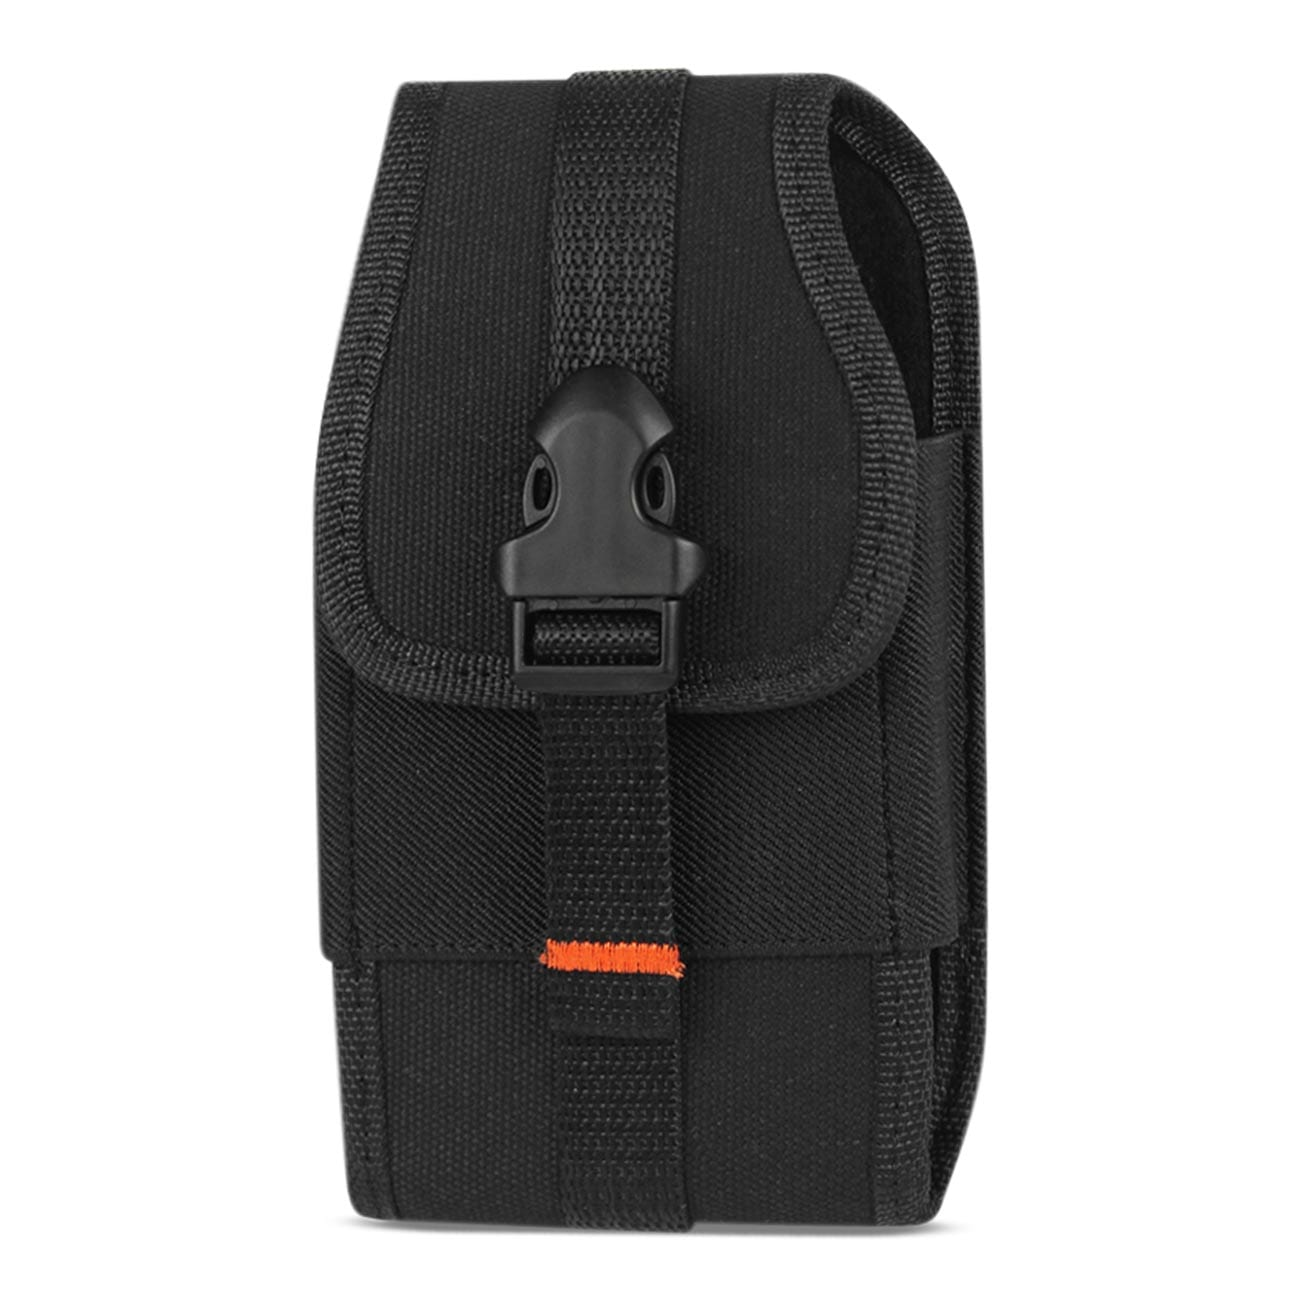 Vertical Pouch In Black With Buckle Clip And Card Holder Inner